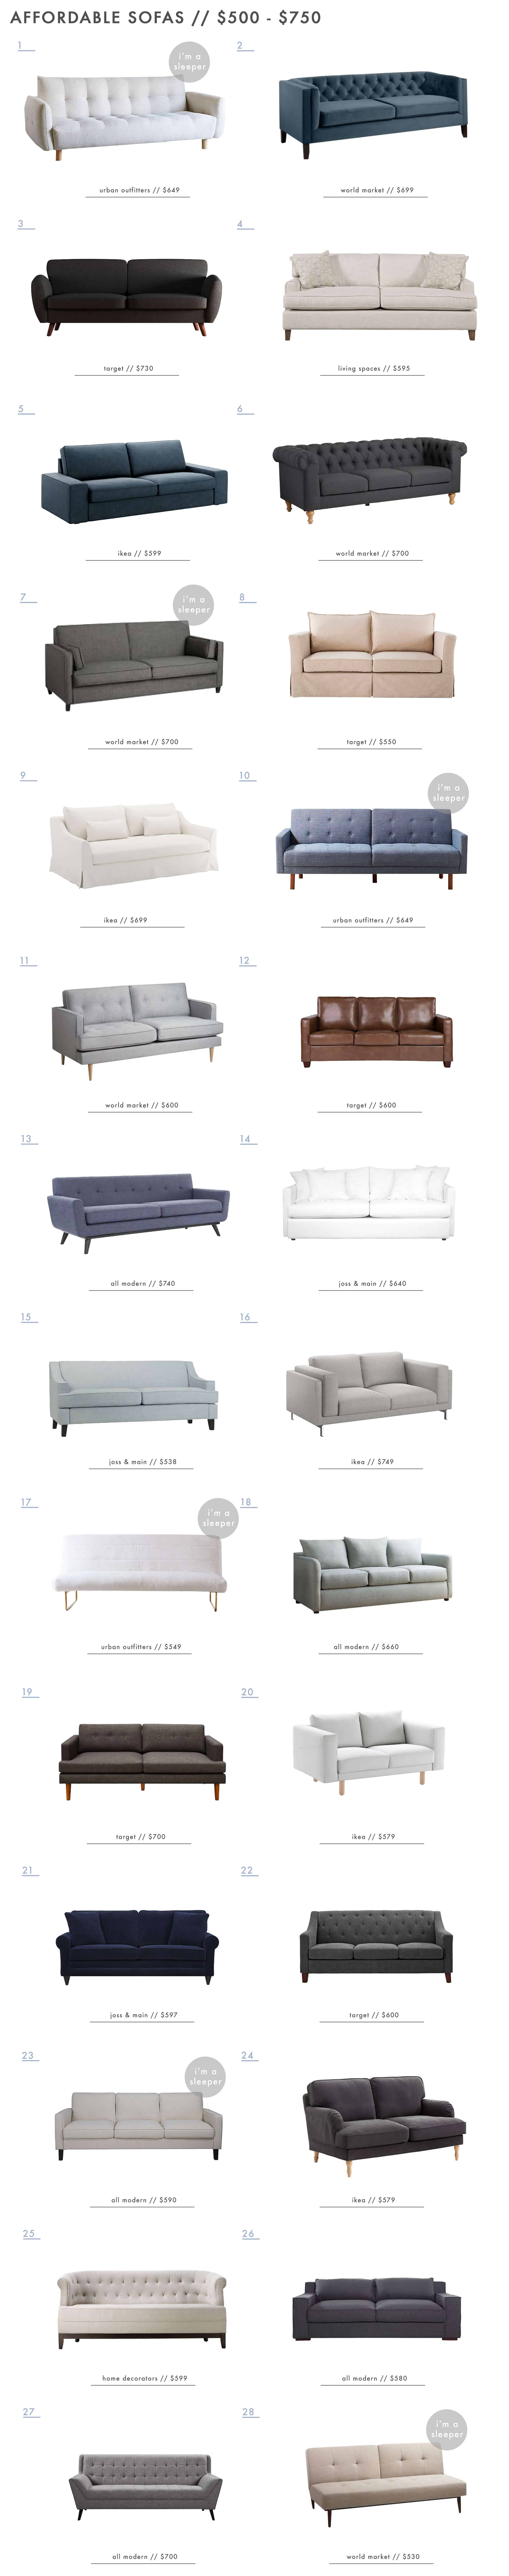 Emily-Henderson_Afforfable-Sofas_Roundup_500-to-7501